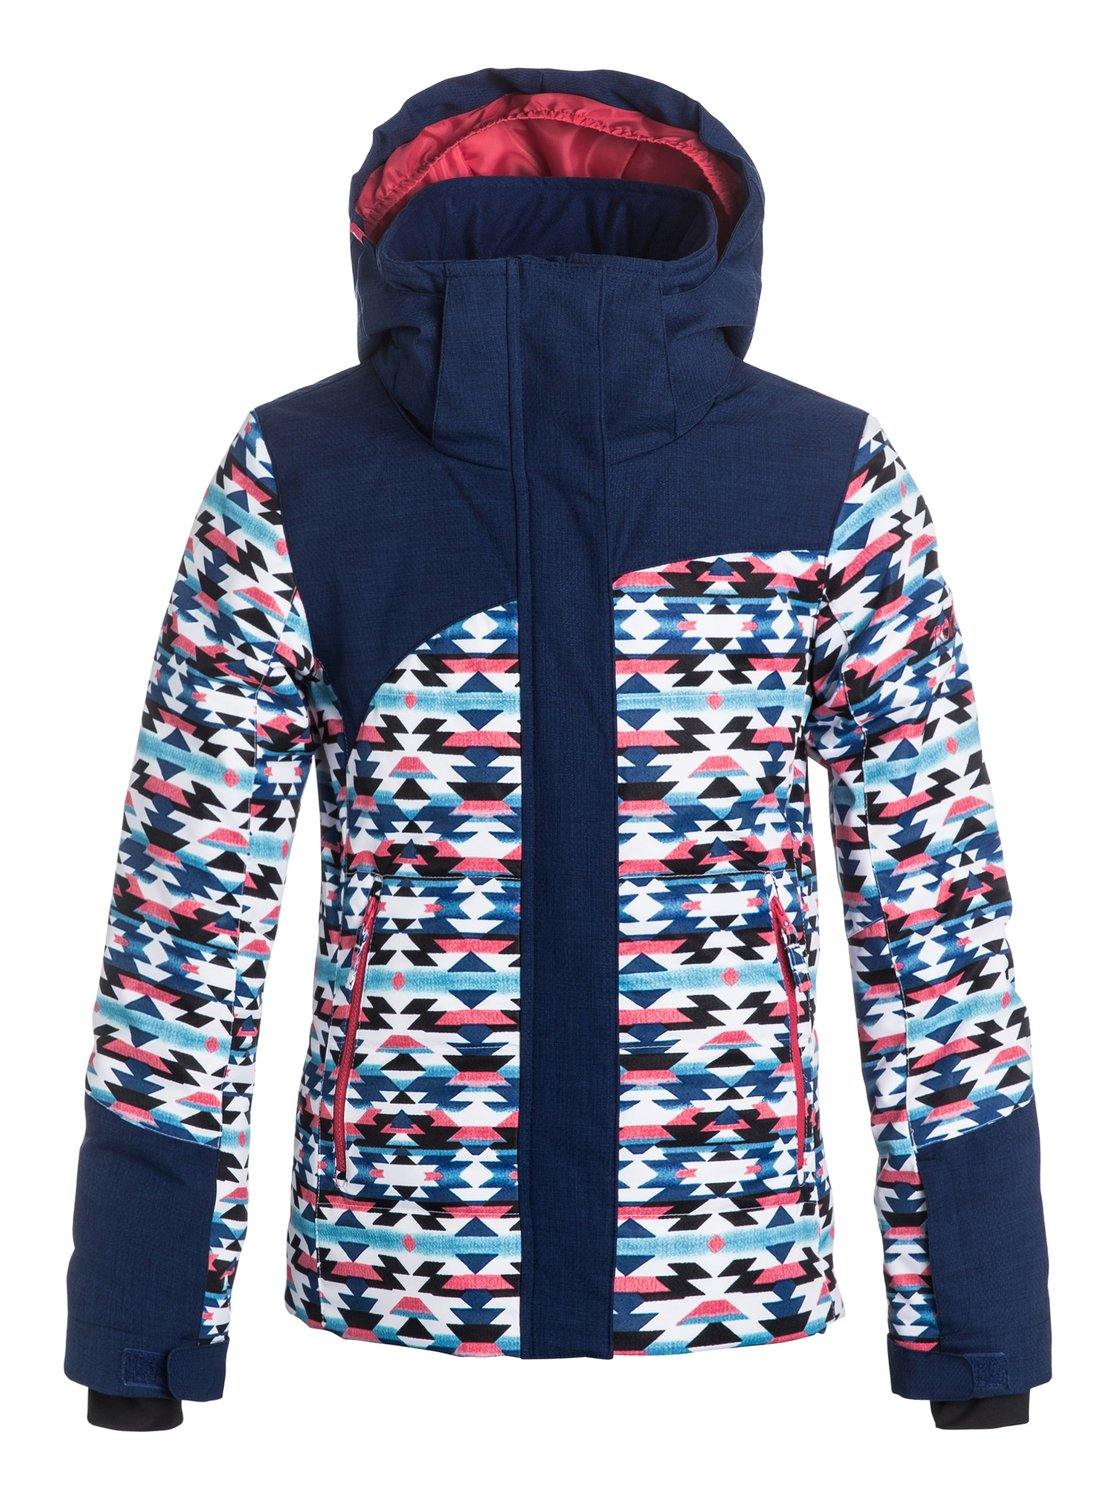 Сноубордическая детская куртка FlickerThe slim fit Flicker snow jacket for girls is both stylish and technical. Crafted with 10K ROXY DryFlight® technology waterproofing for reliable waterproof and breathable protection, the hooded design mixes Warmflight® polyfill quilting with non-quilted insulation for warmth without the bulk. Critically-taped seams, breathable taffeta lining with soft tricot panels and a host of tech features will keep you schussing to your hearts content.<br>